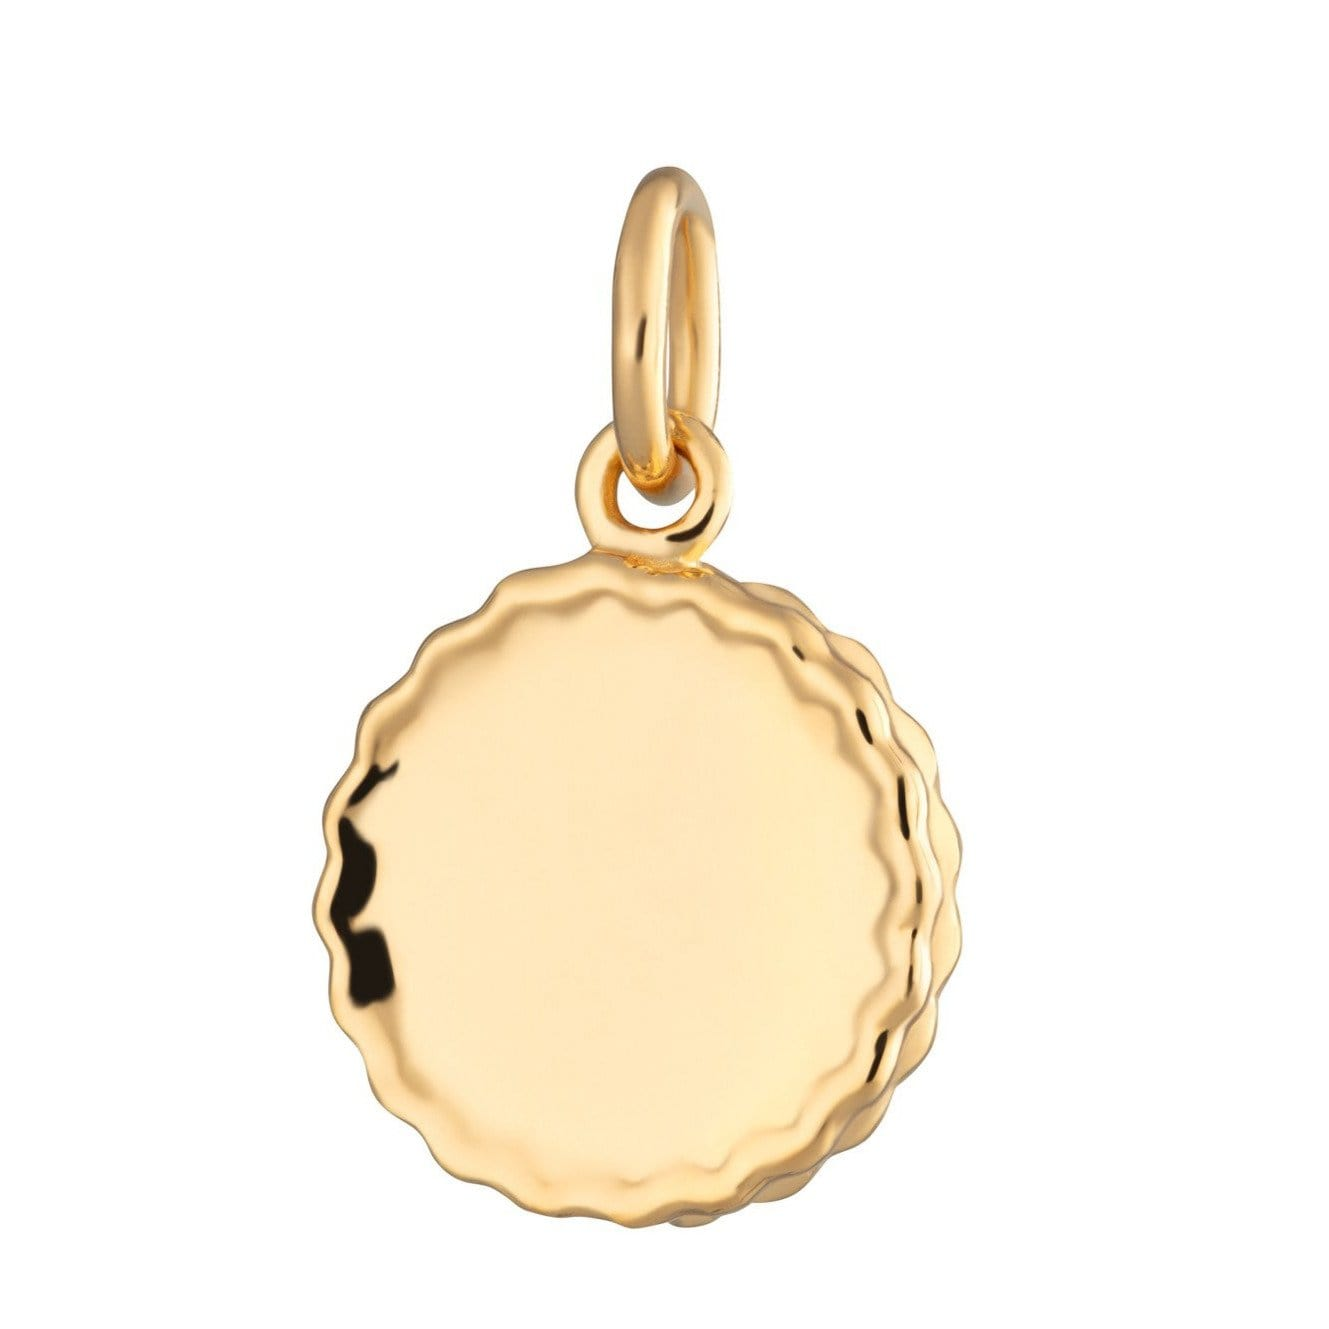 Gold Plated Jammie Dodger Charm